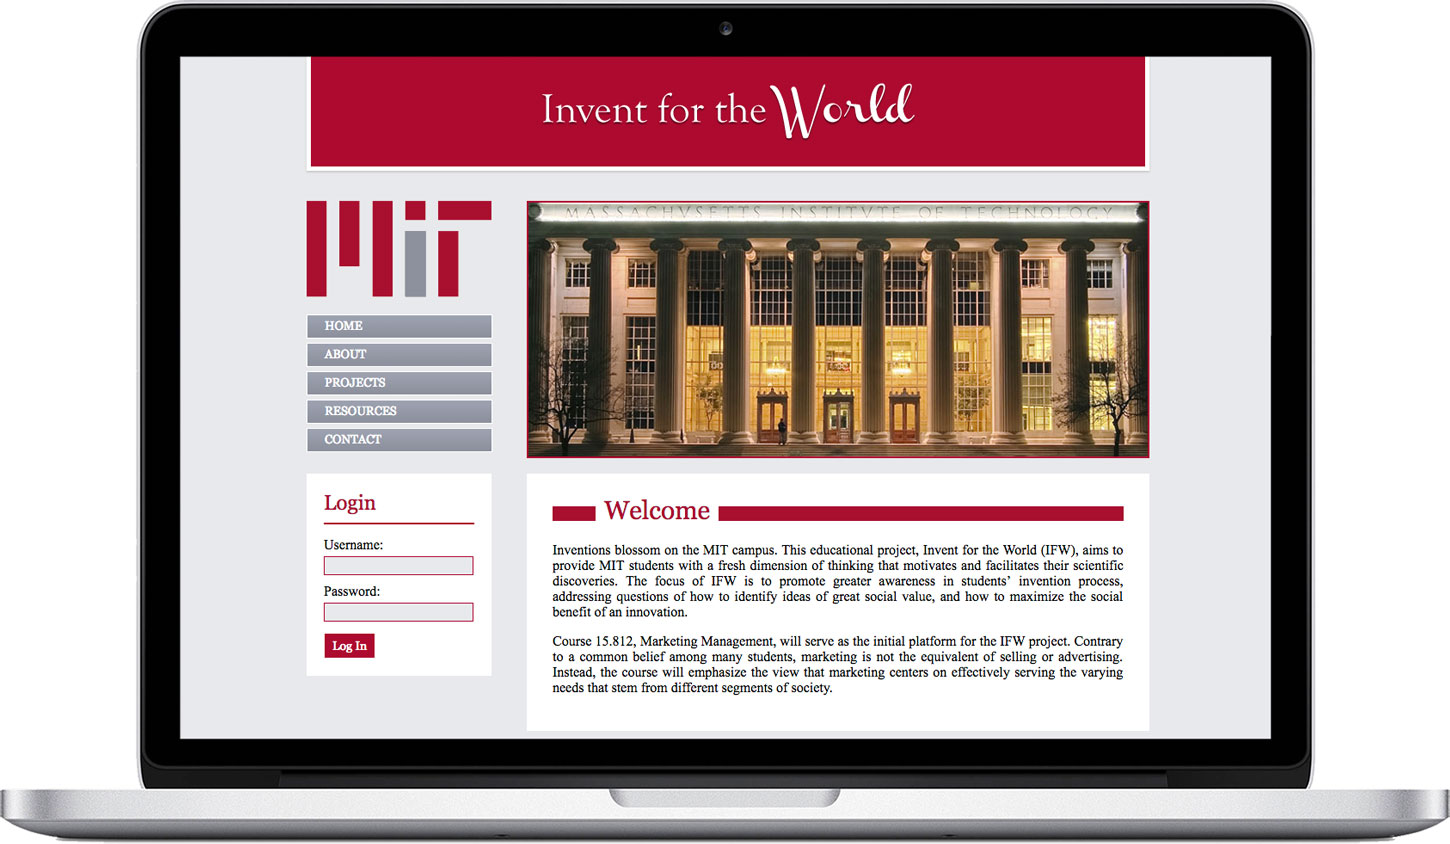 Website Sample 2: MIT Invent for the World